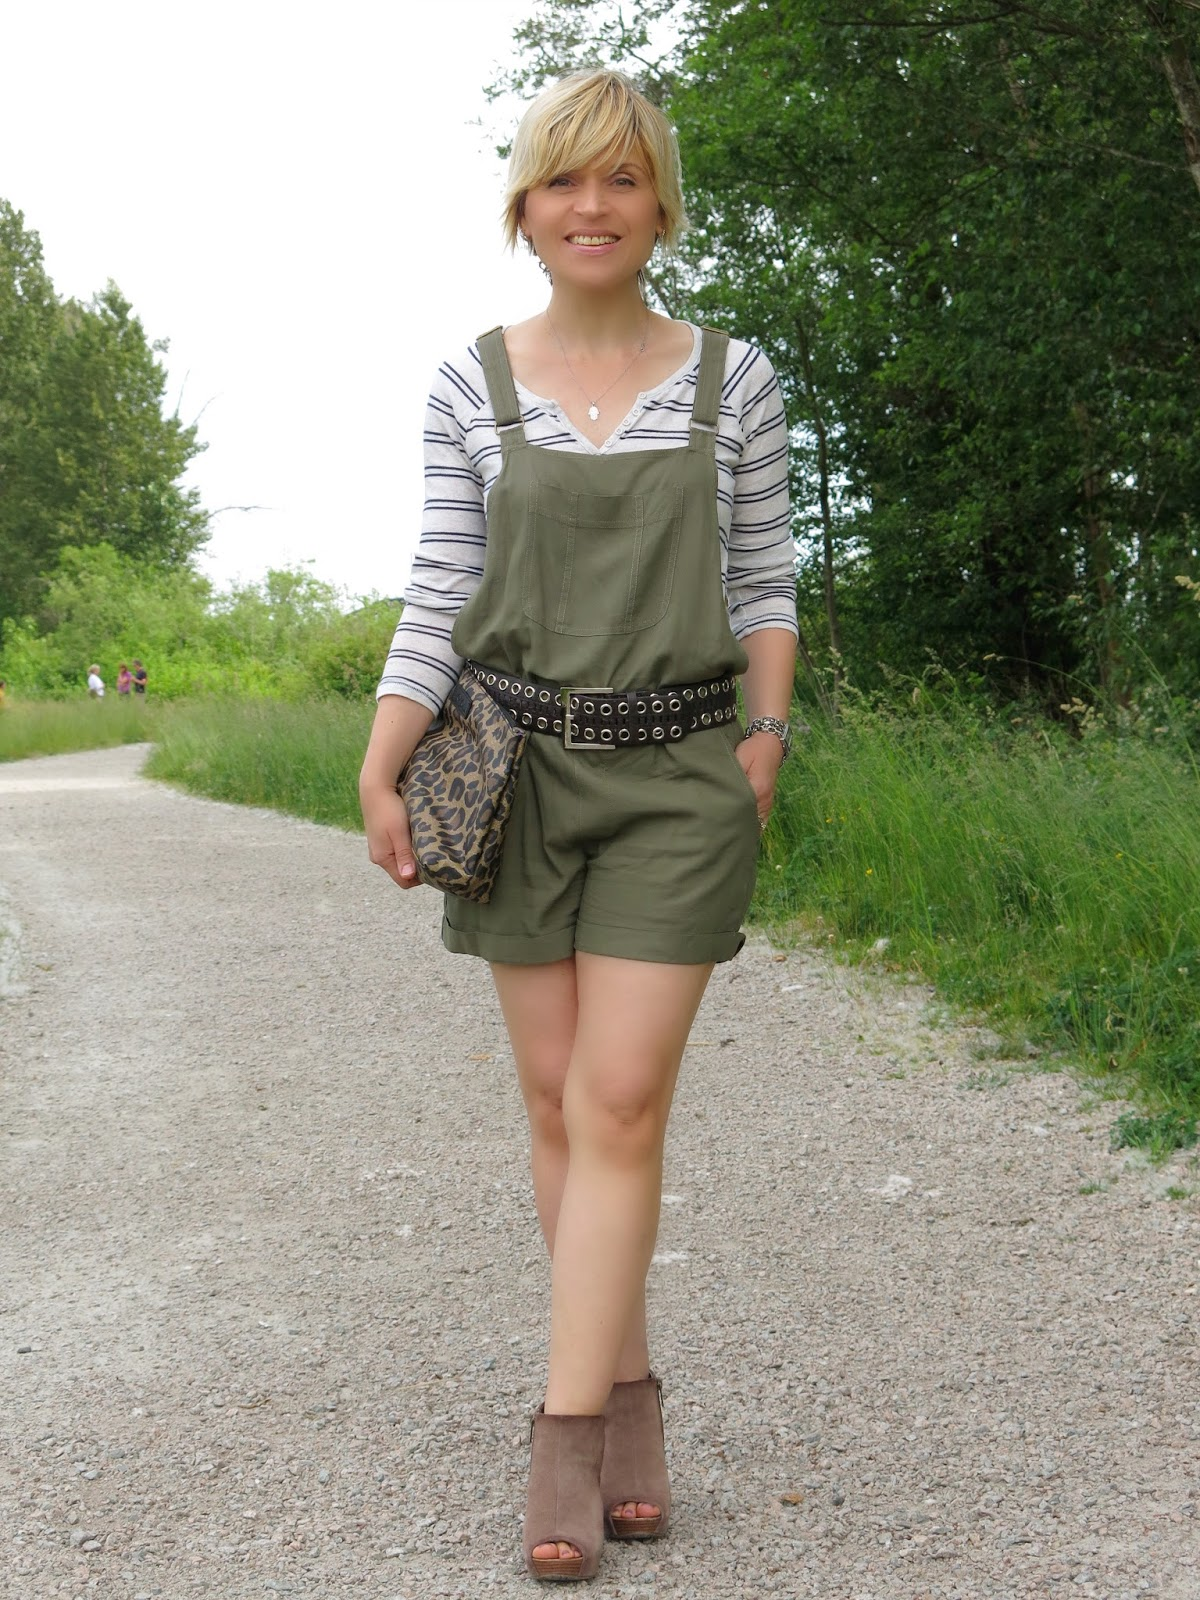 styling olive shortalls with a striped henley top, a wide belt, and wedge heels